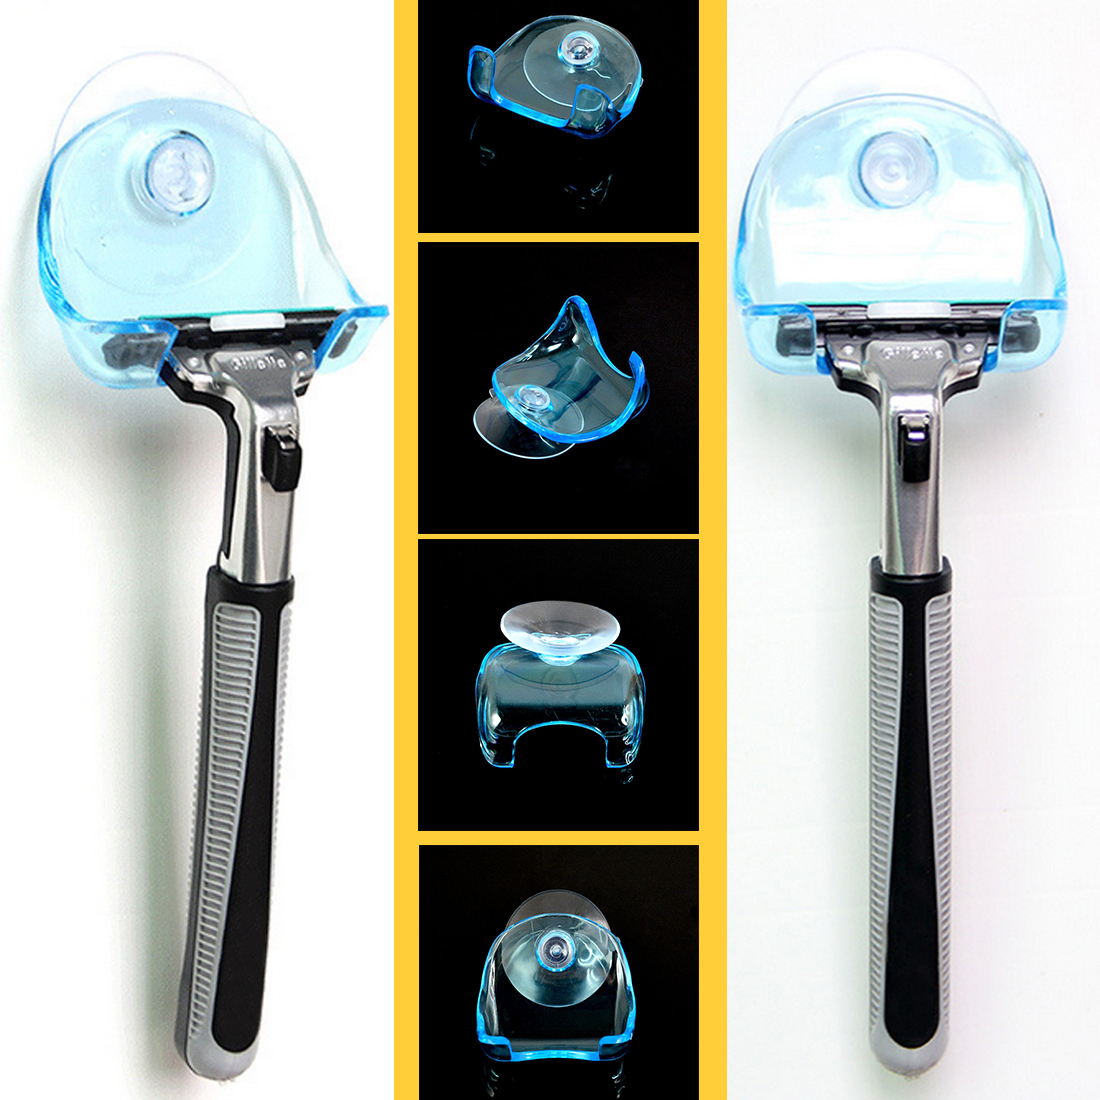 1pcs Plastic Super Suction Cup Razor Rack Clear Blue Bathroom Razor Holder Suction Cup Shaver Storage Rack